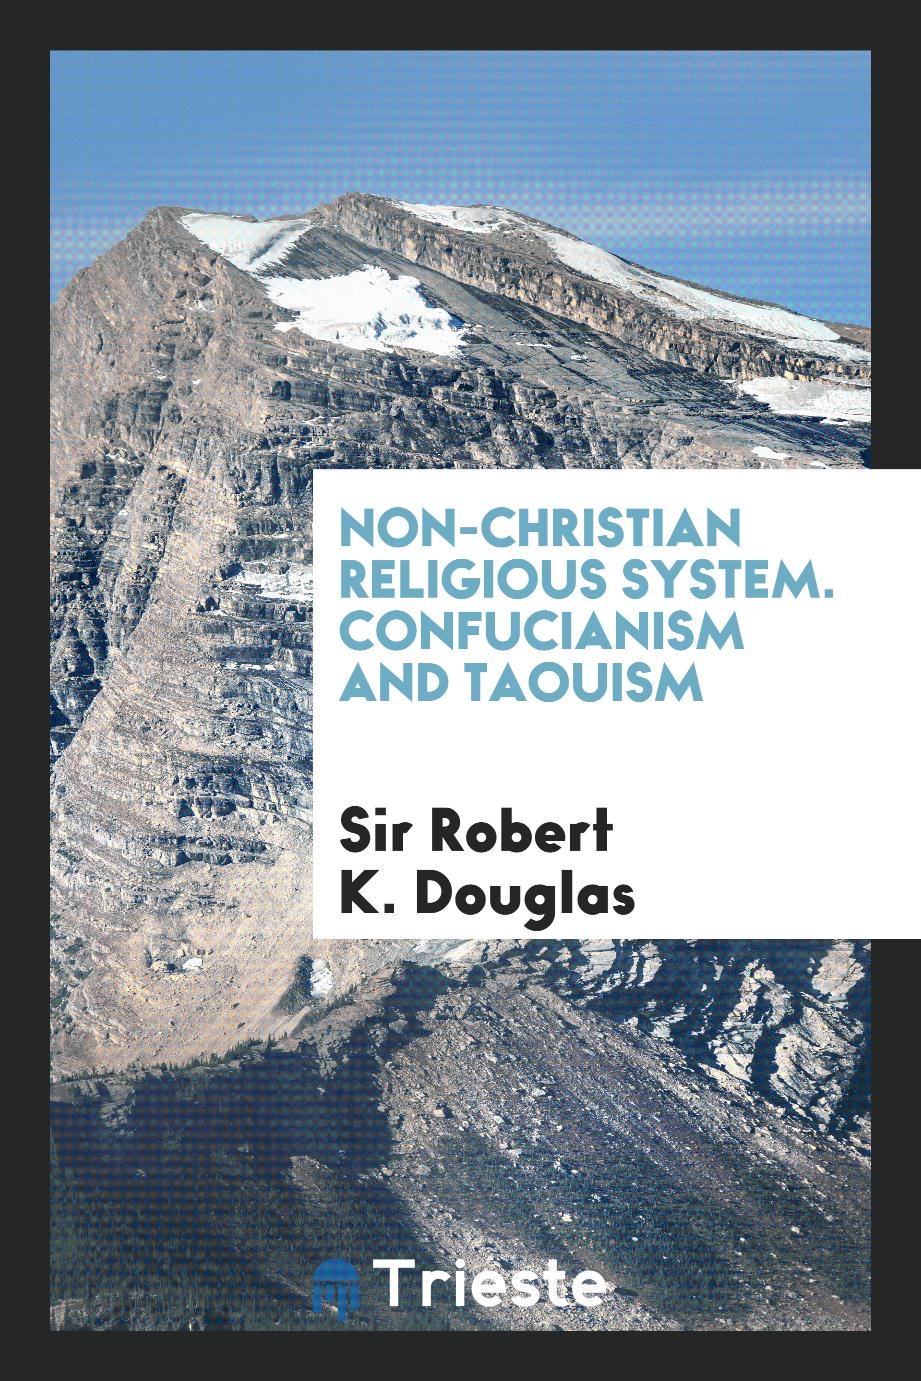 Non-Christian Religious System. Confucianism and Taouism